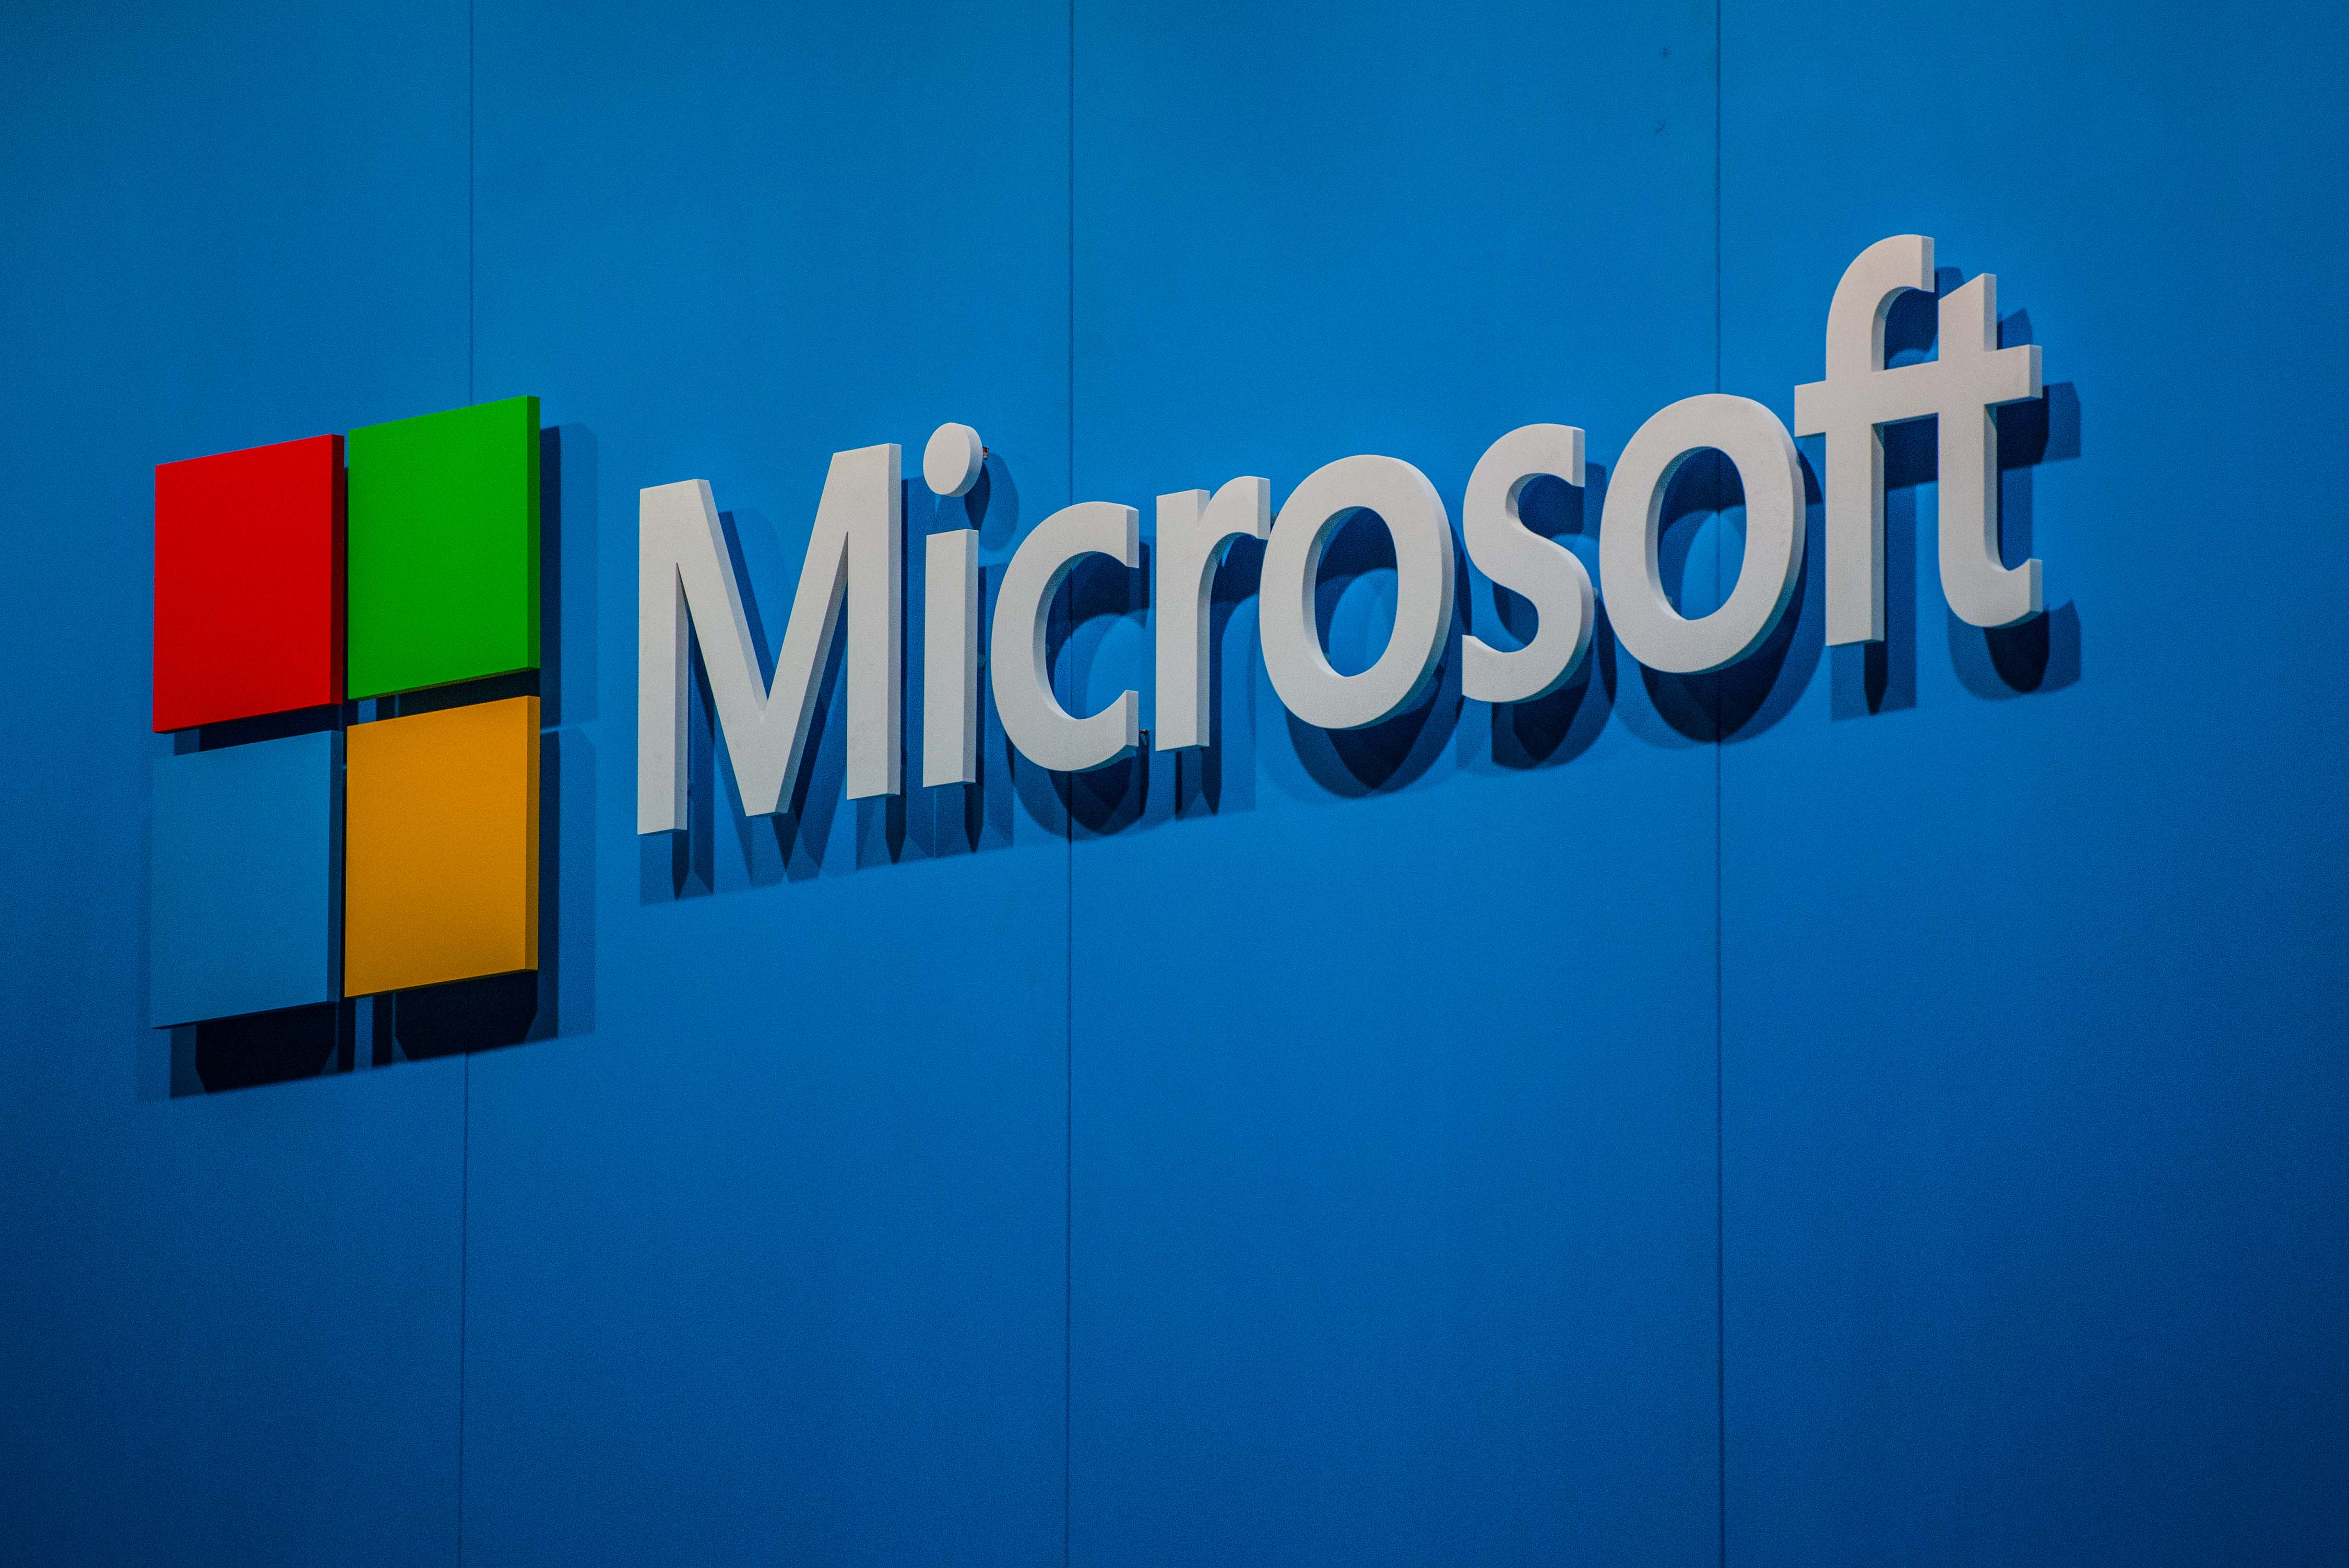 Microsoft owns Startup to enhance its Cloud container